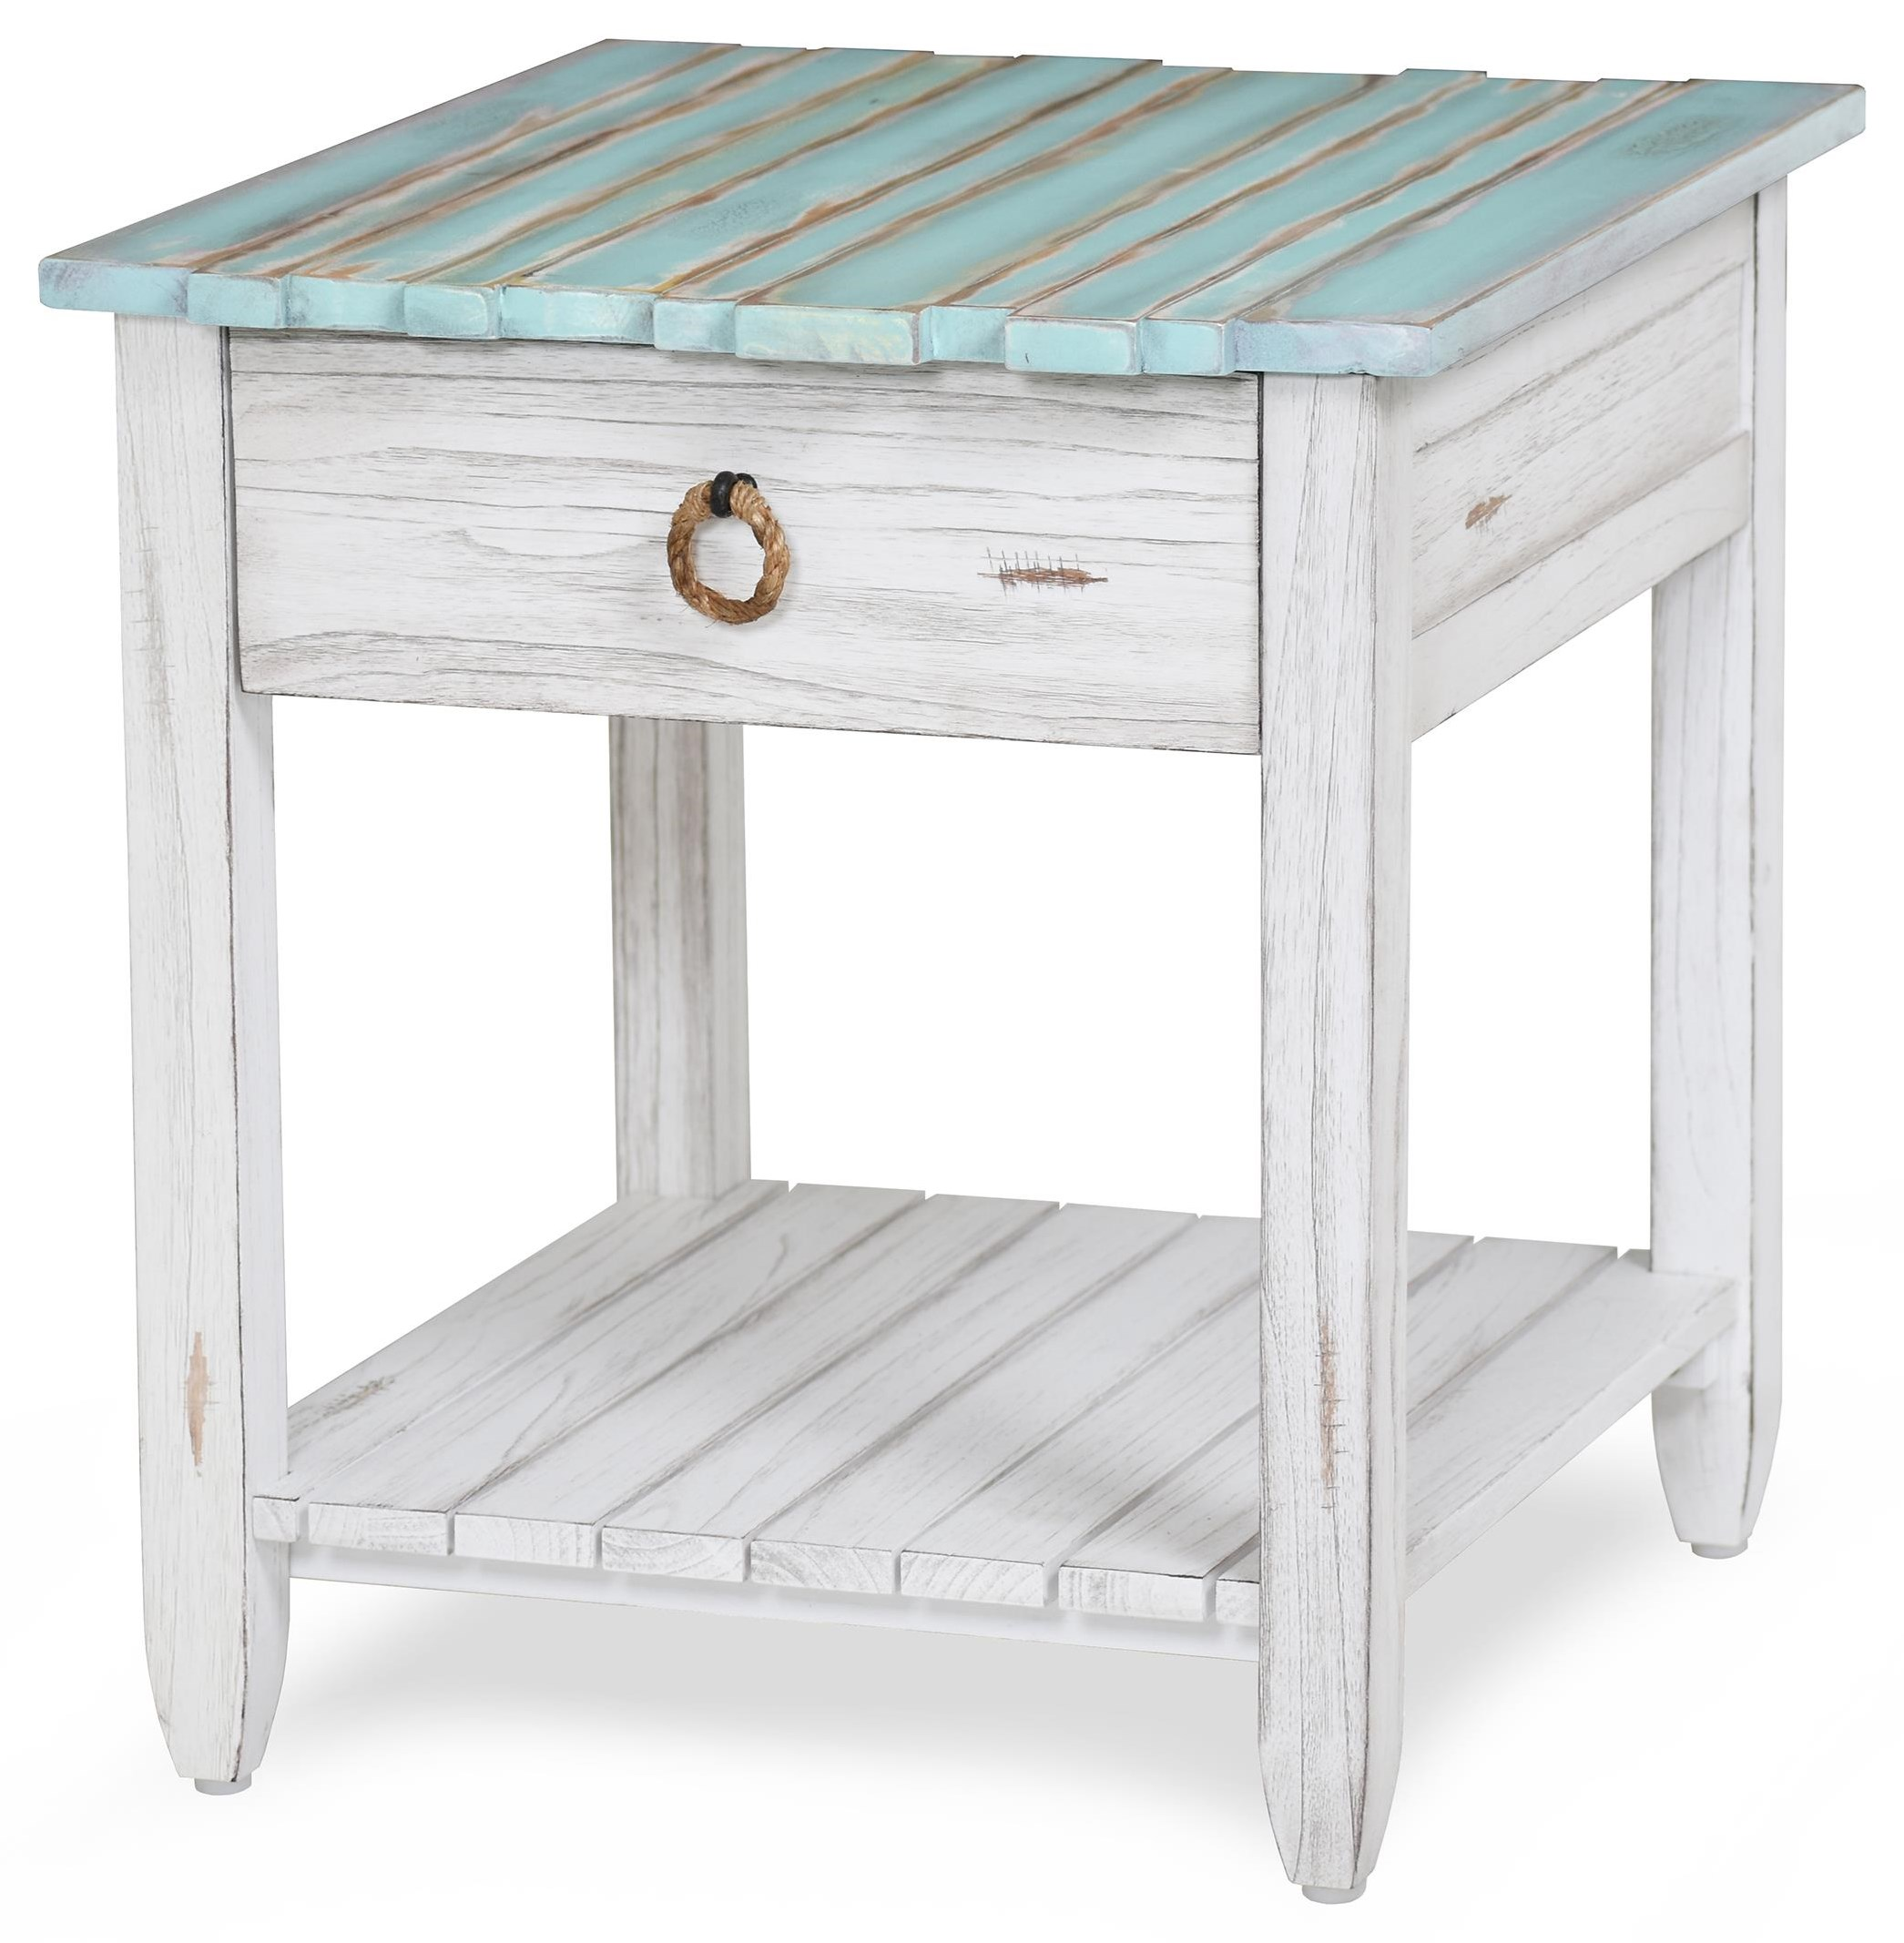 picket fence end table by Sea Winds Trading Company at Johnny Janosik